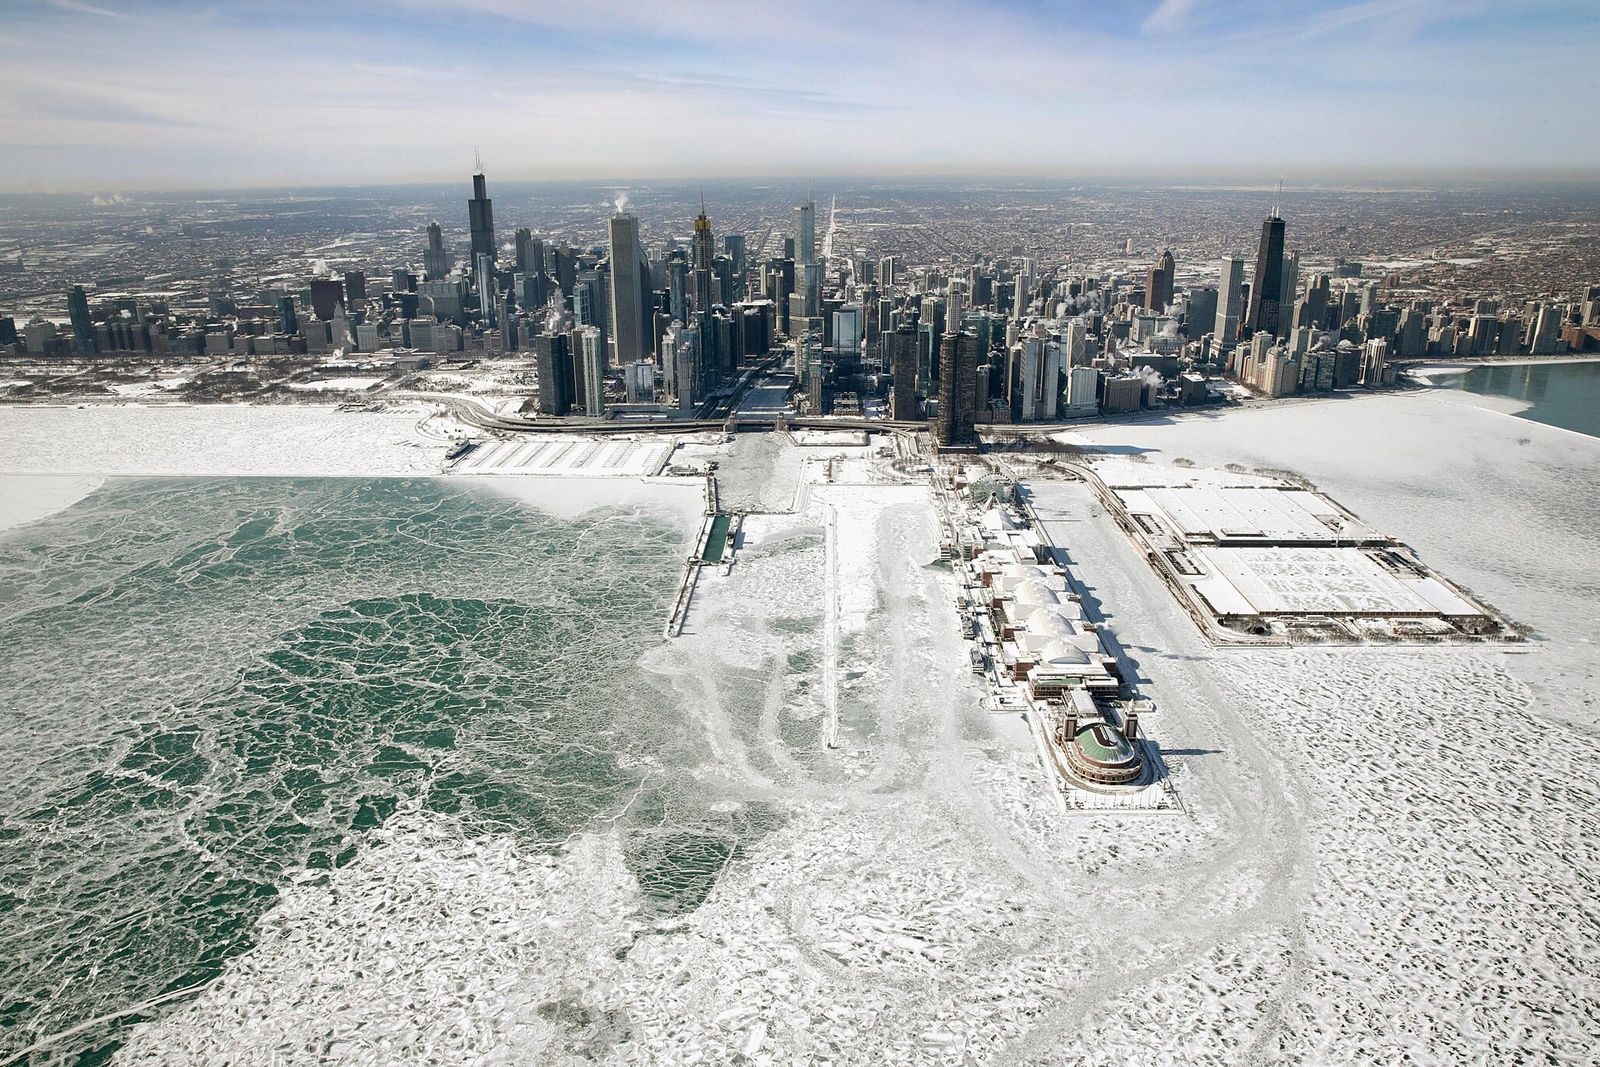 The polar vortex is coming – and it will bring an icy winter